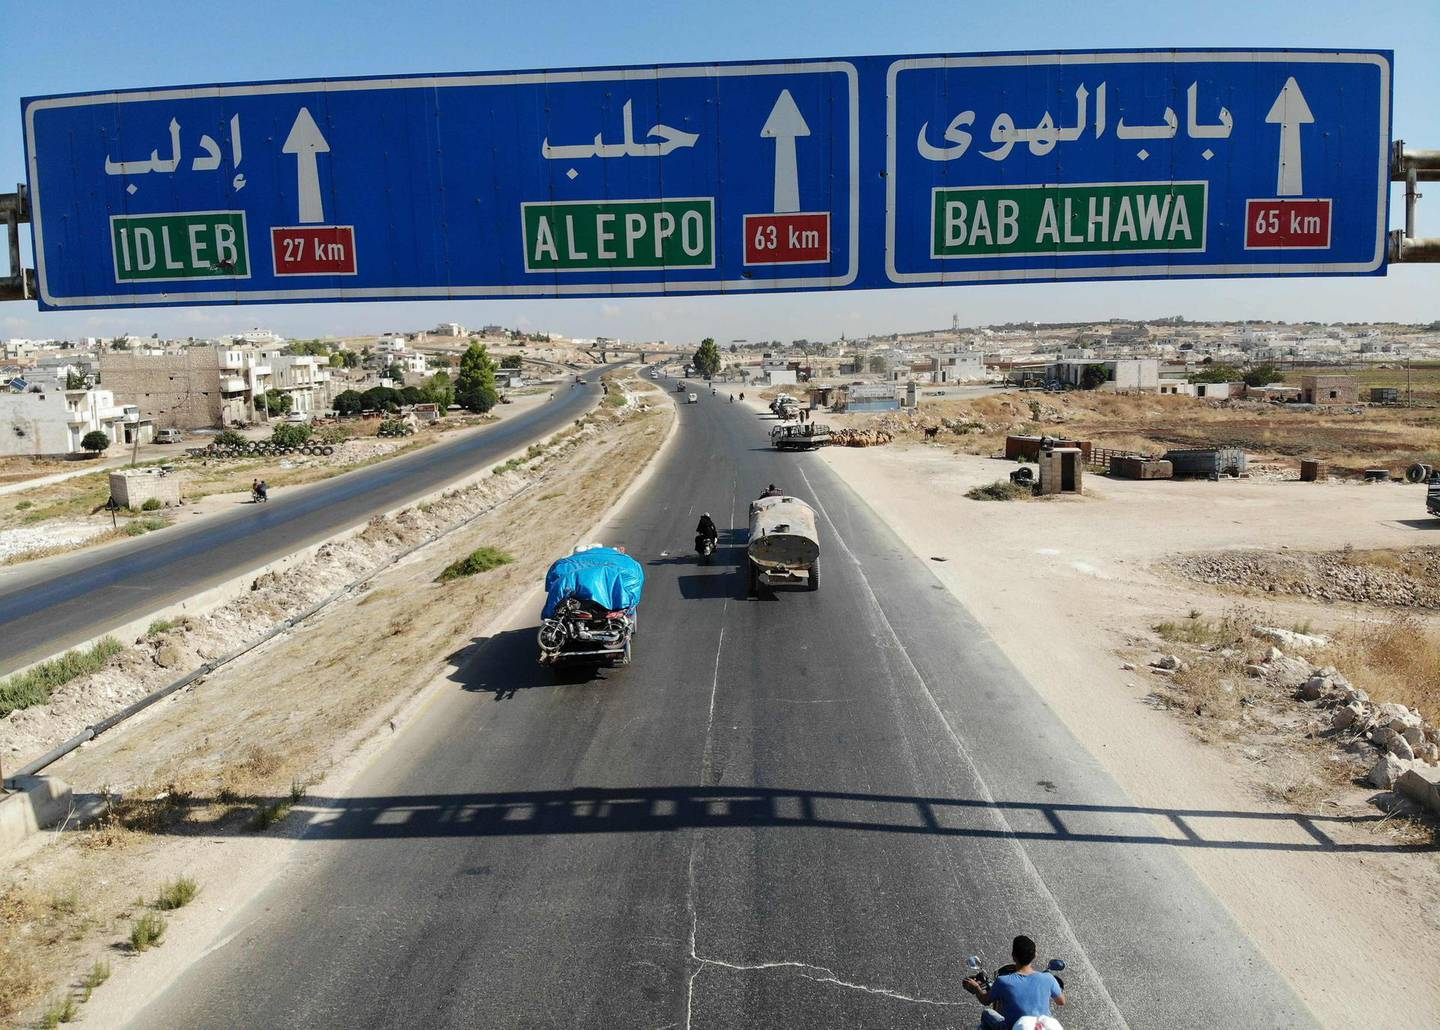 Syrian civilians flee on August 21, 2019 a conflict zone in Syria's rebel-held northwestern region of Idlib, where government bombardment has killed hundreds since late April. Damascus said on August 22 it is opening a corridor for civilians to leave the Idlib province. Damascus has opened such corridors out of other rebel bastions in the past as a prelude to retaking them either by force or through negotiated surrenders. The Idlib region, which sits on the Turkish border, is now the last major stronghold of opposition to the Russia-backed government of President Bashar al-Assad.  / AFP / Omar HAJ KADOUR